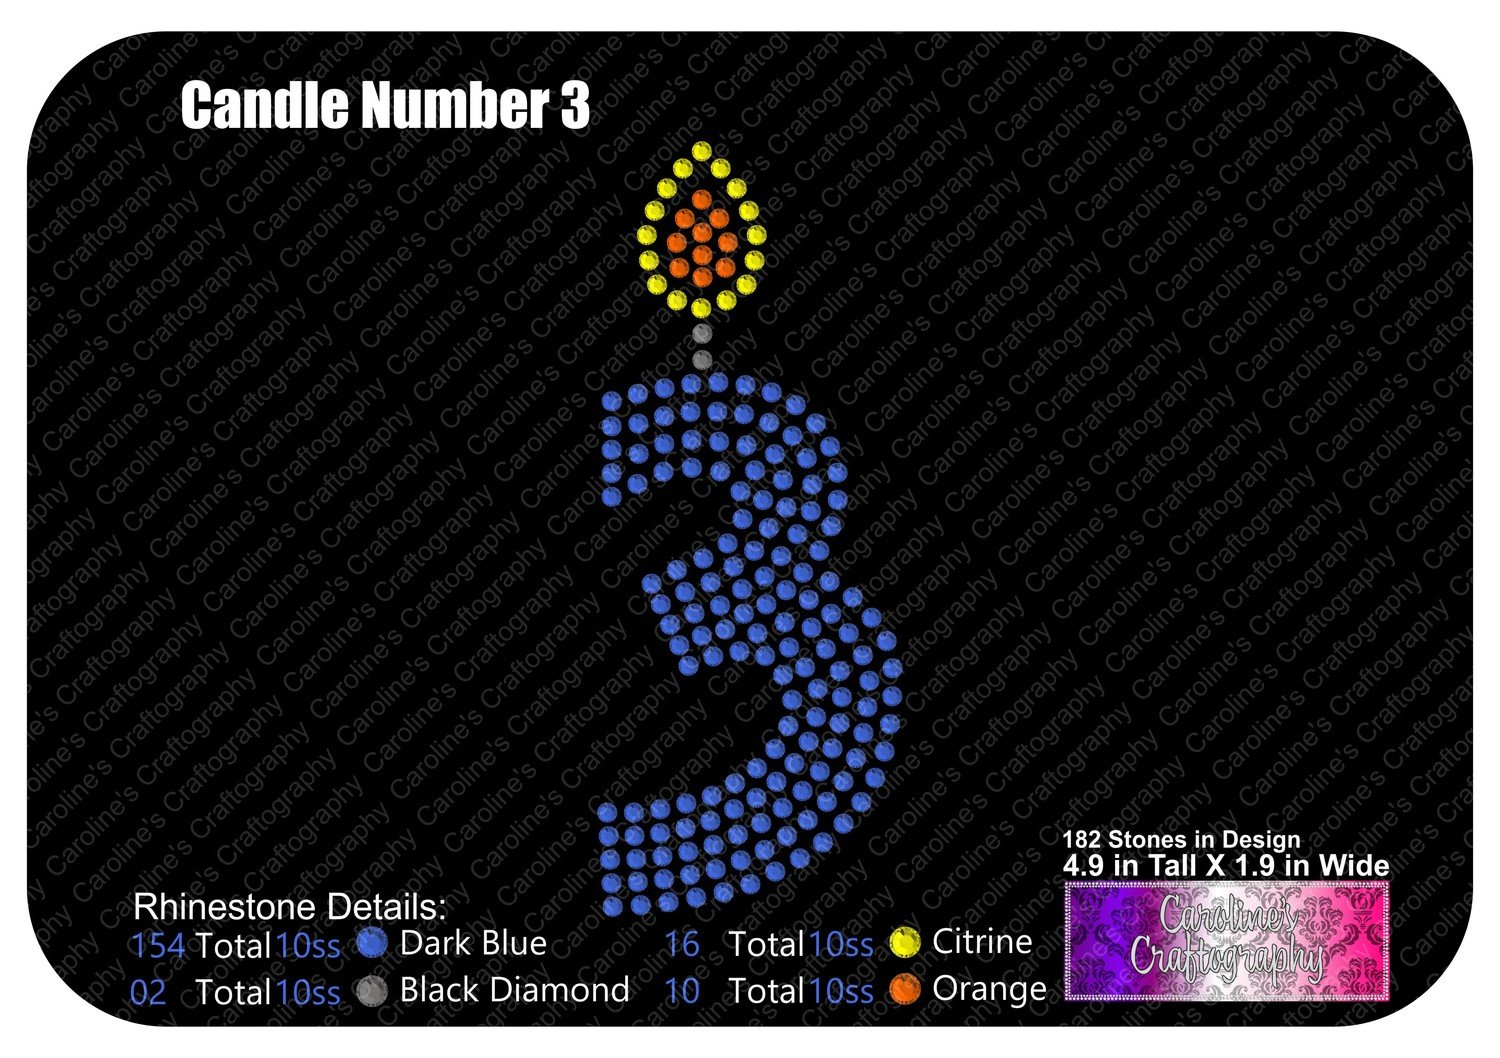 Candle Number 3 Stone